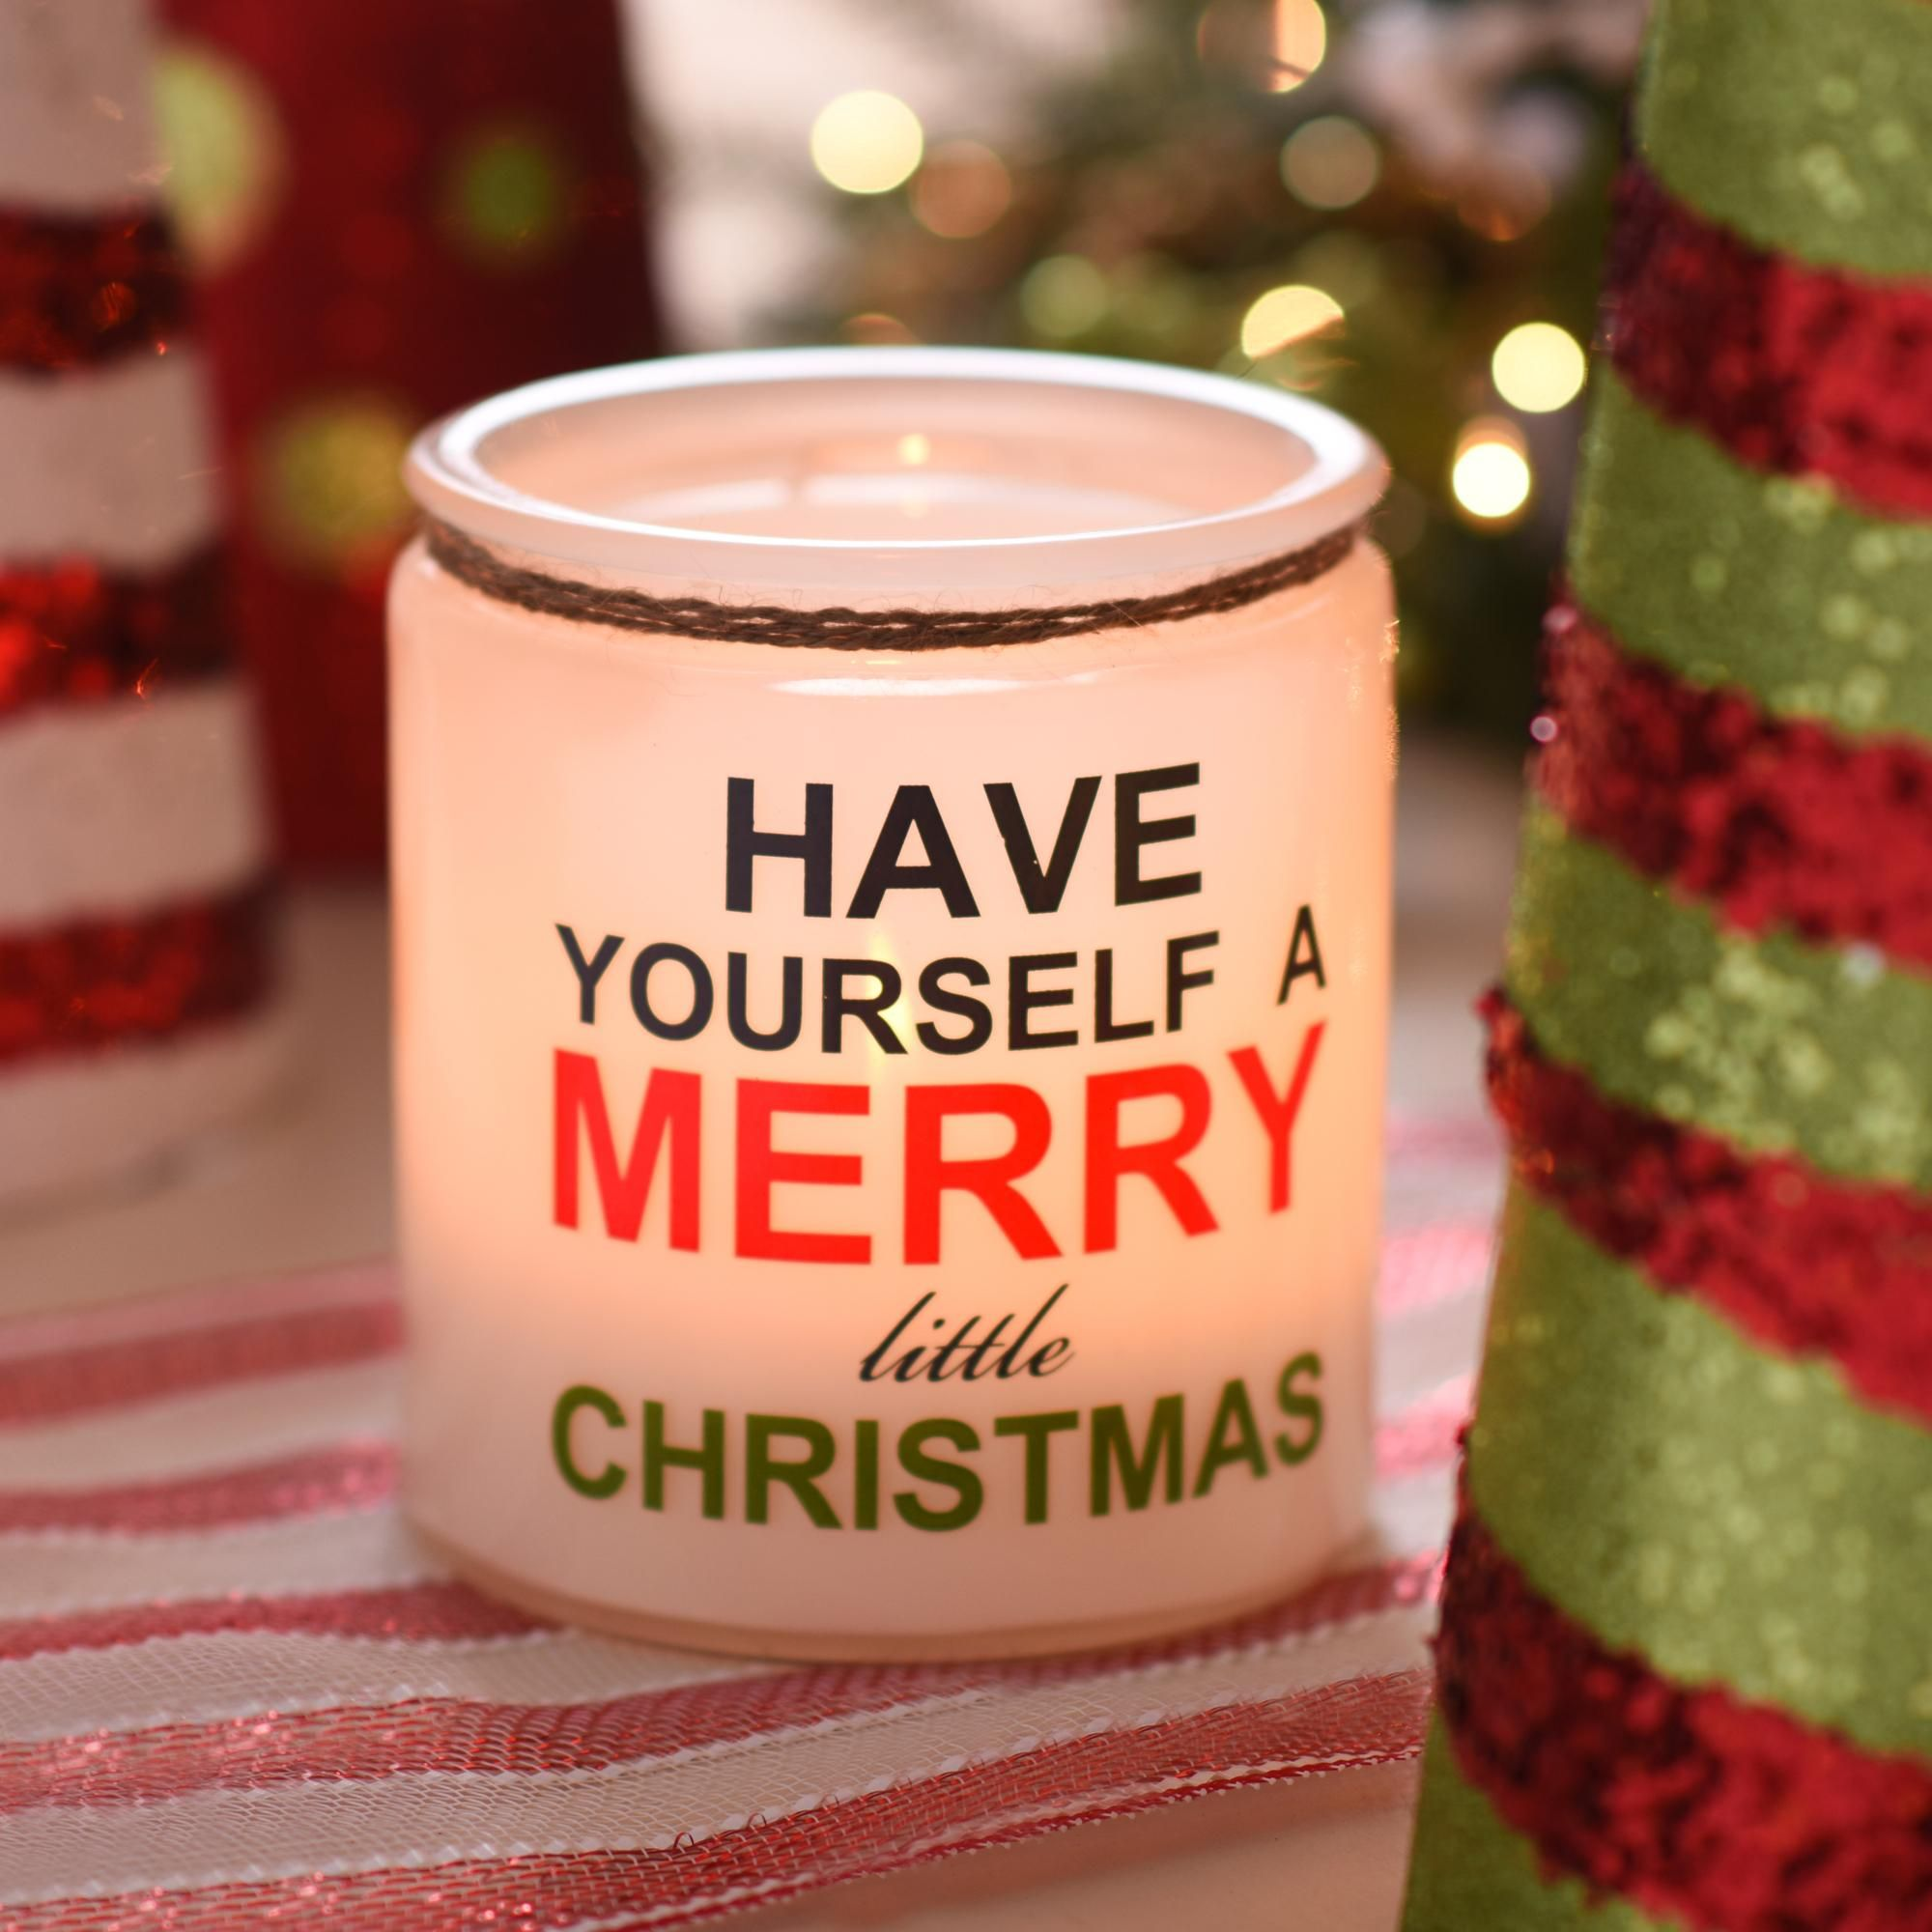 Simple but sweet. Place your favorite holiday candle inside the candle holder that reads Have Yourself a Merry Little Christmas. It will bring a smile to everyone's faces!